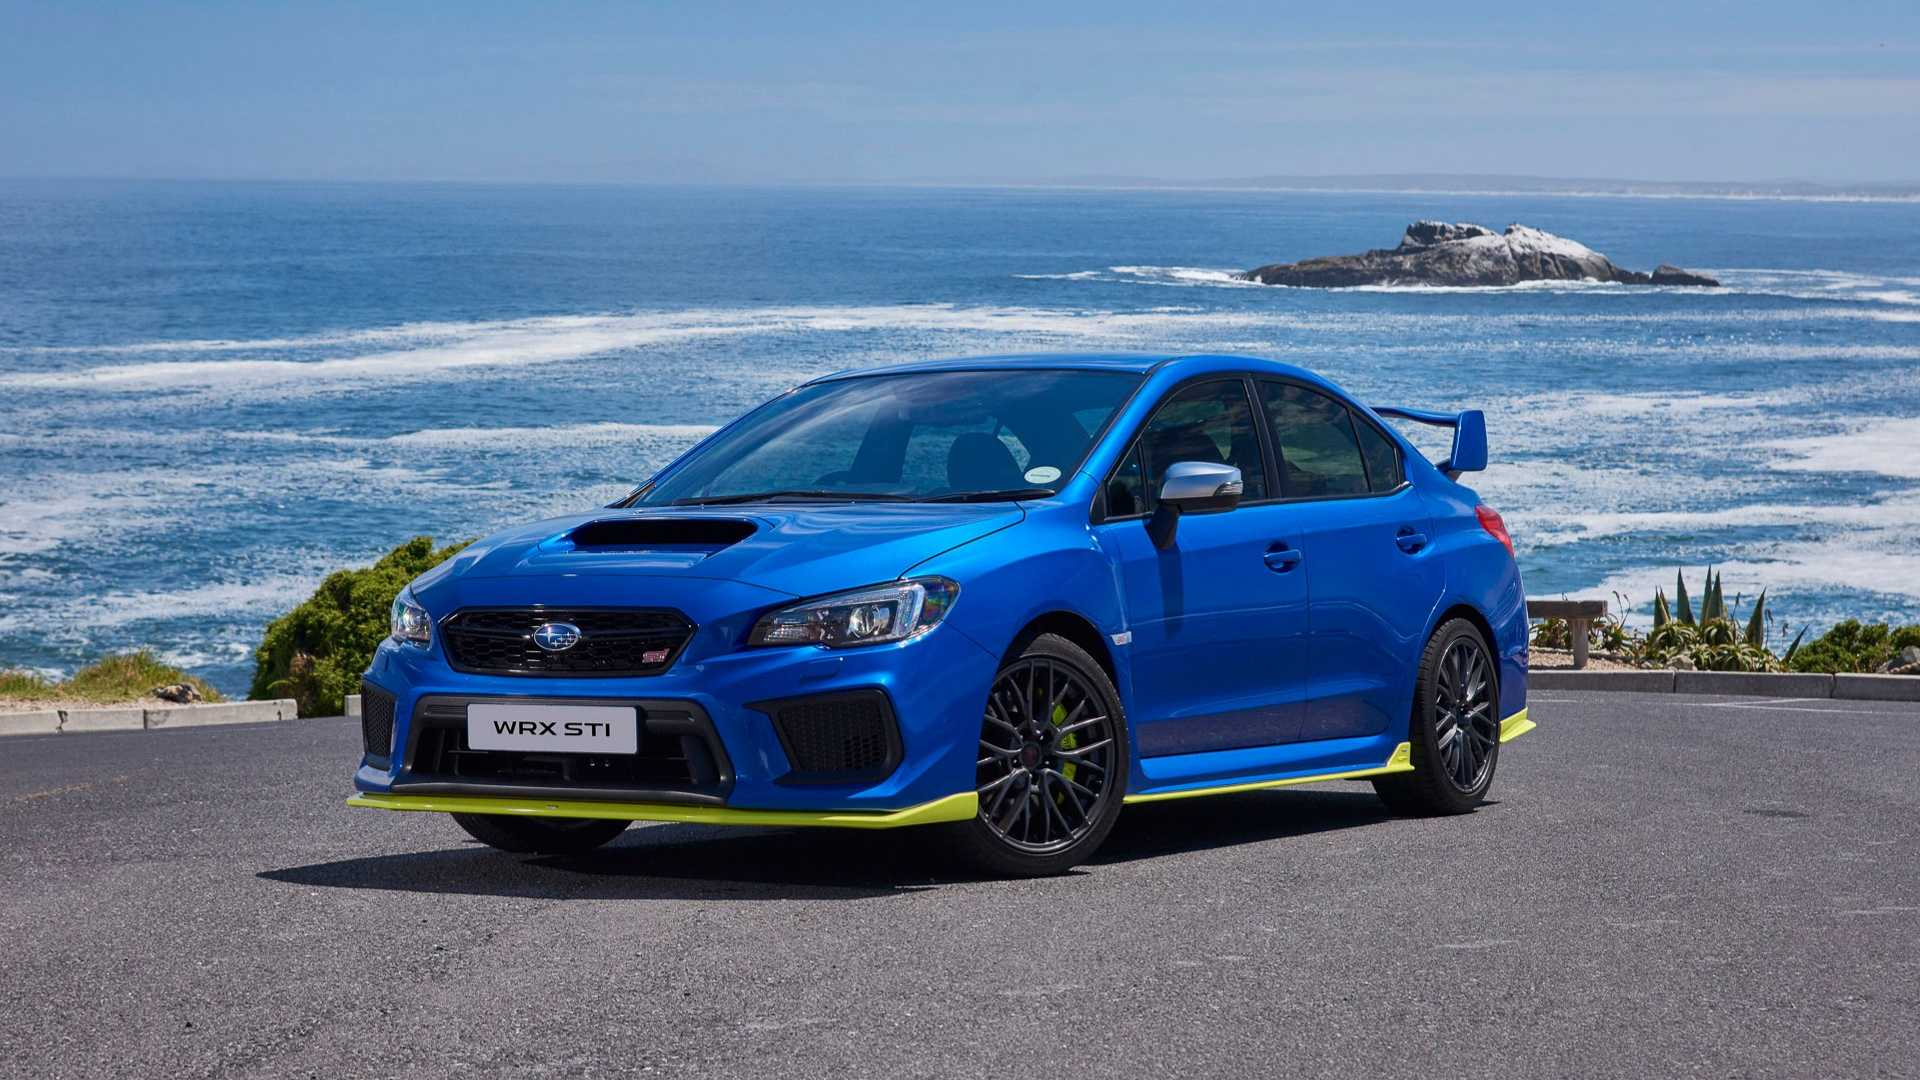 44 New Subaru 2019 Build Price And Release Date